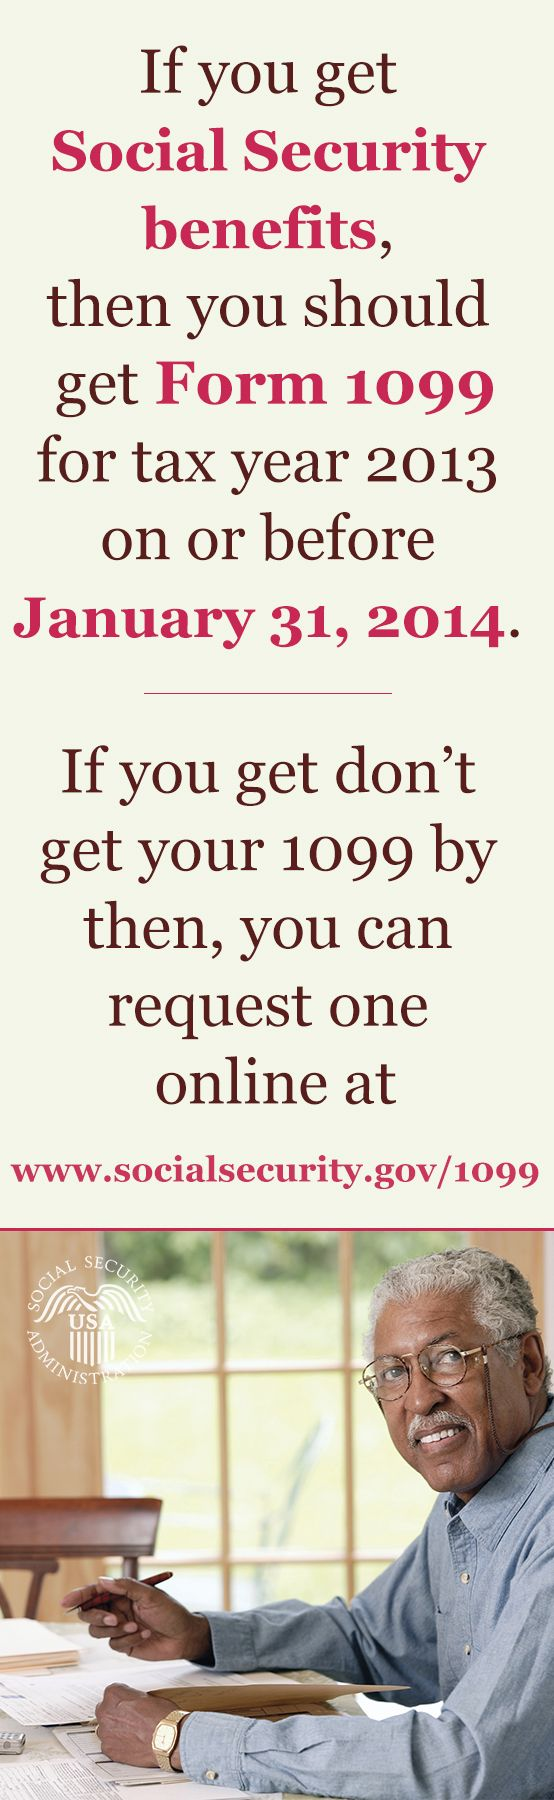 Best Social Security Online Services Images On